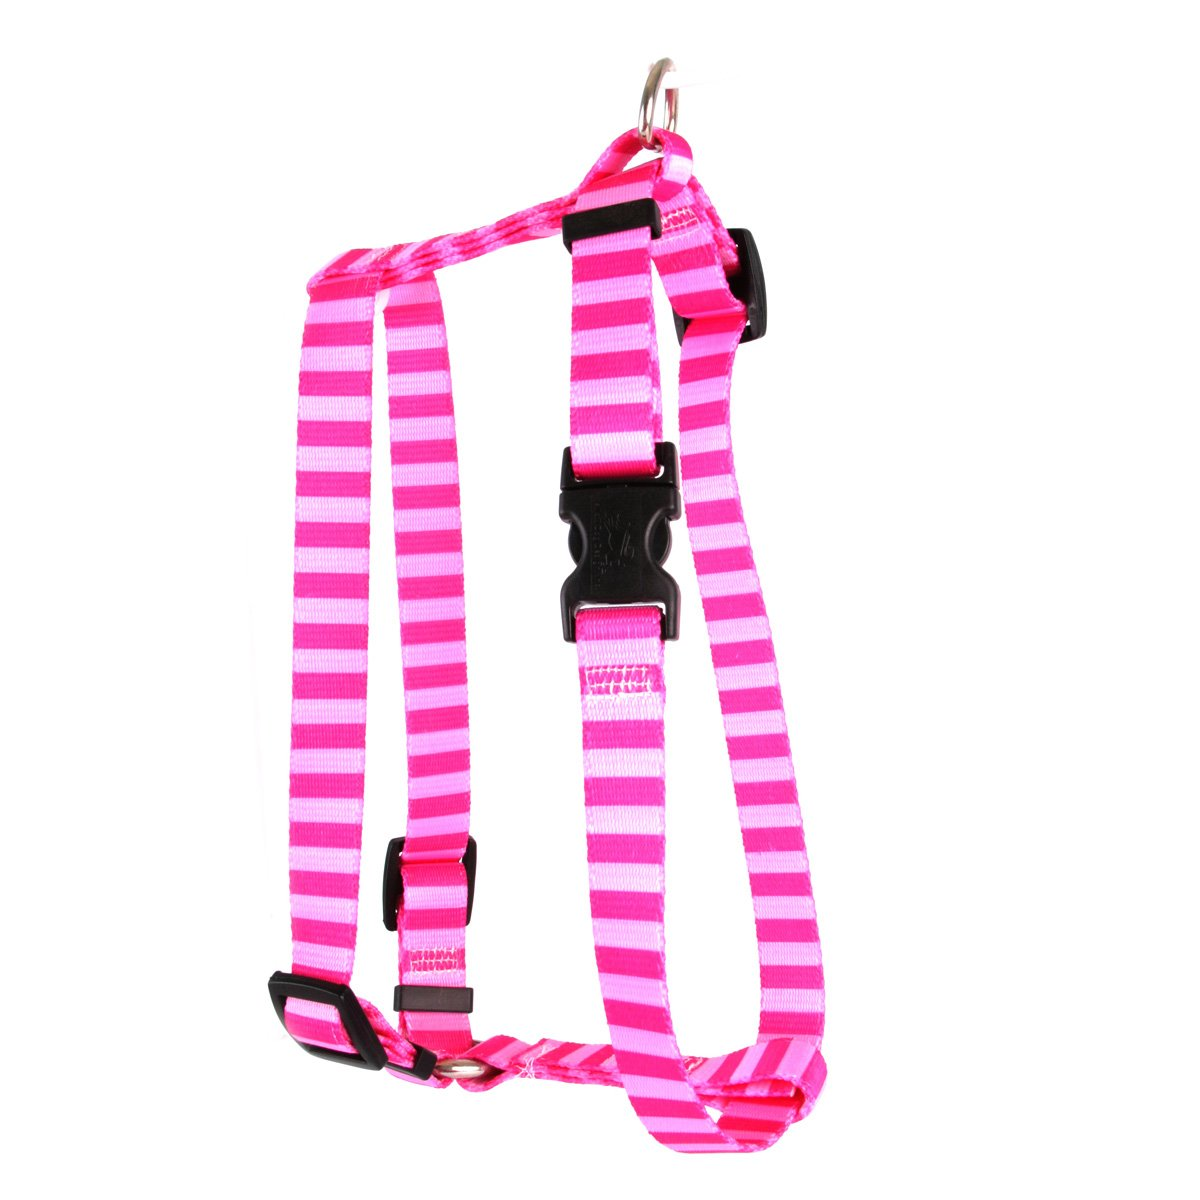 Yellow Dog Design Pink Pink Stripe Roman Style H Dog Harness, Large-1'' Wide fits Chest of 20 to 28'' by Yellow Dog Design